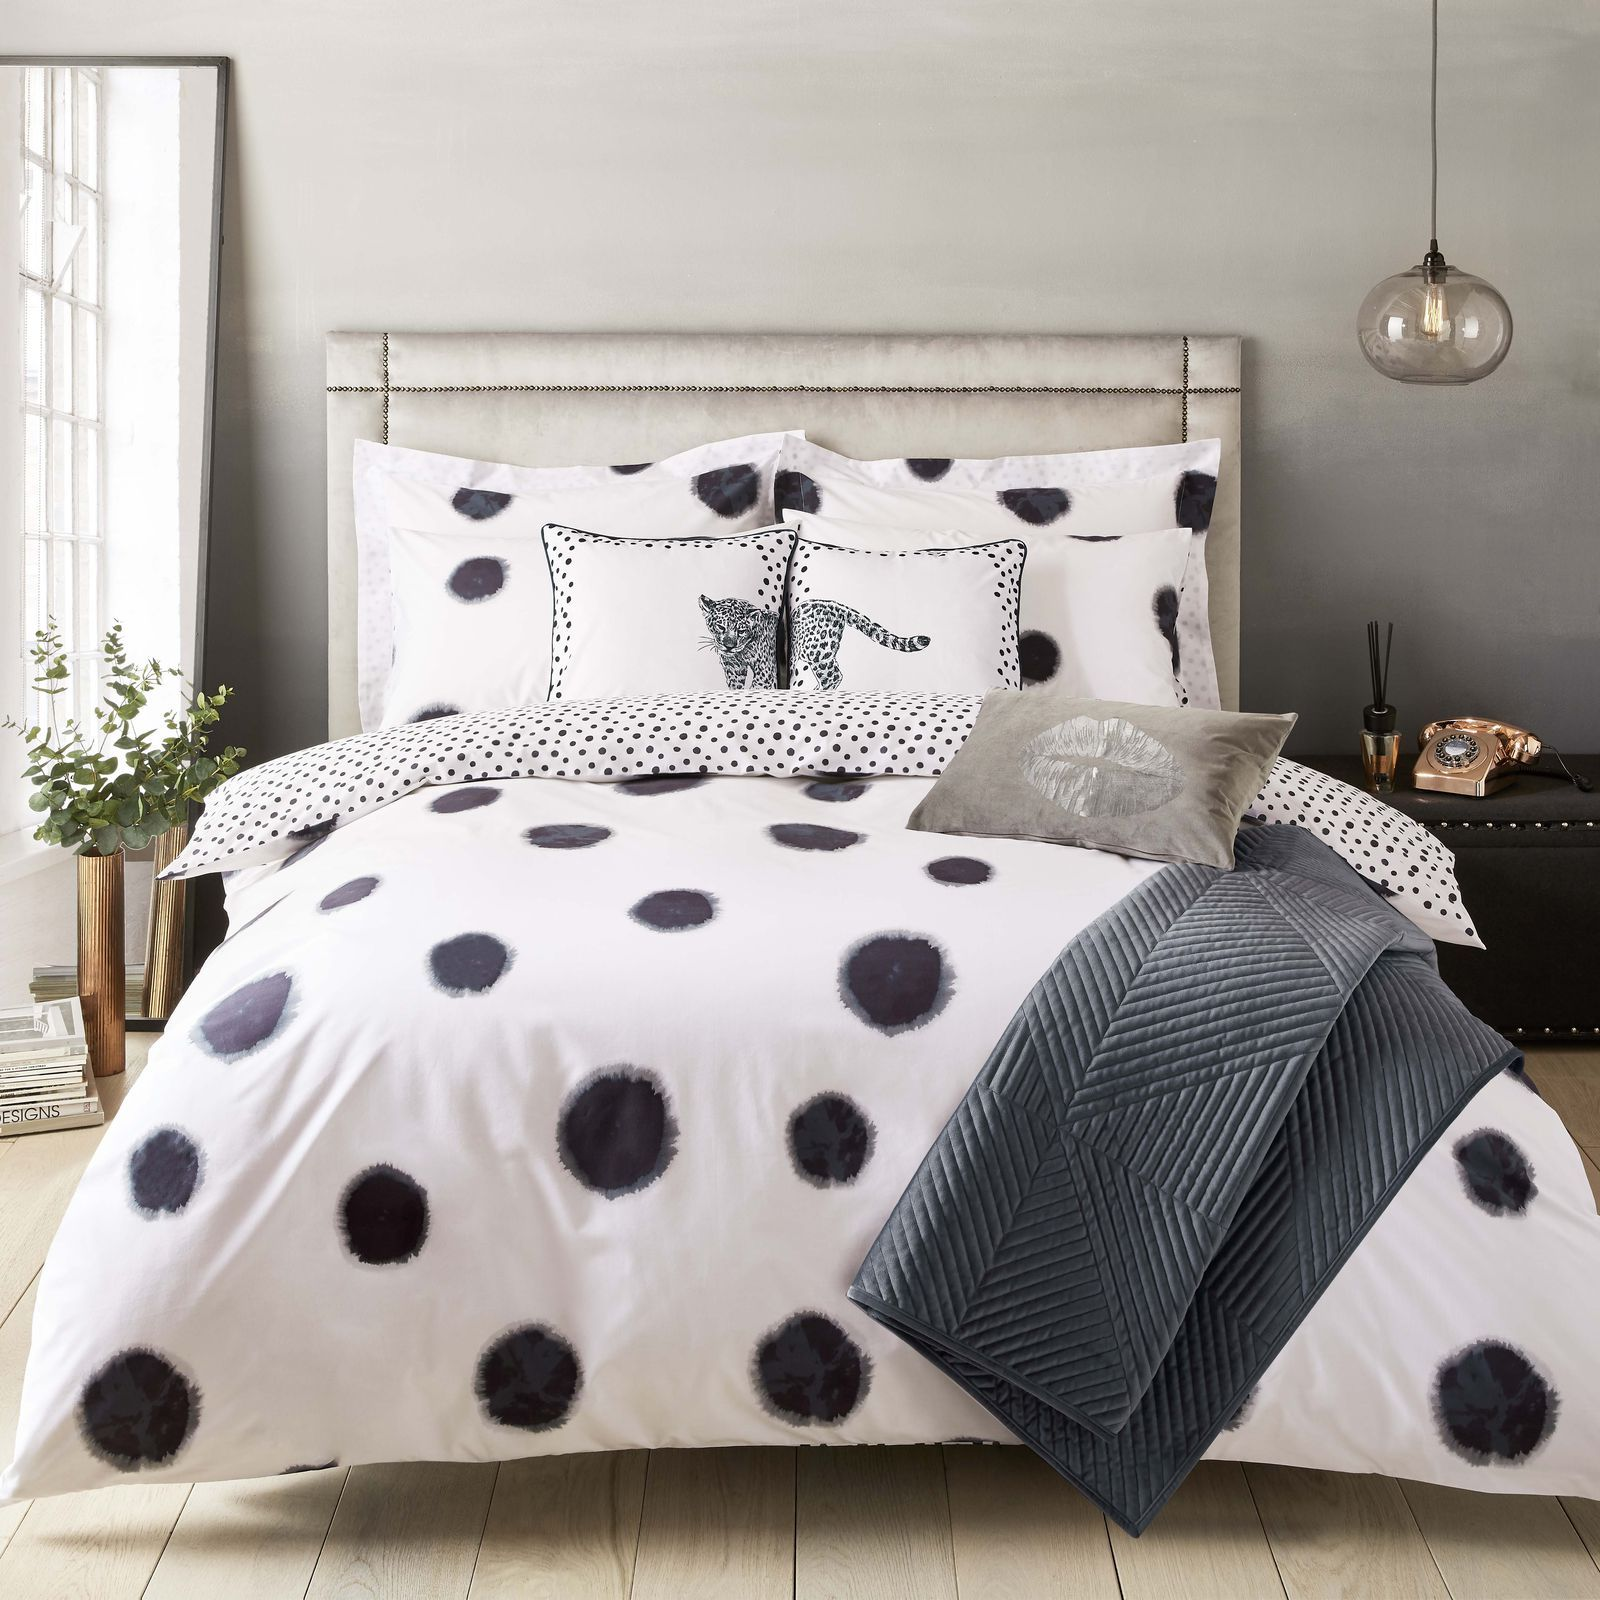 Emma Willis Launches Exclusive Bedding Collection With Dunelm